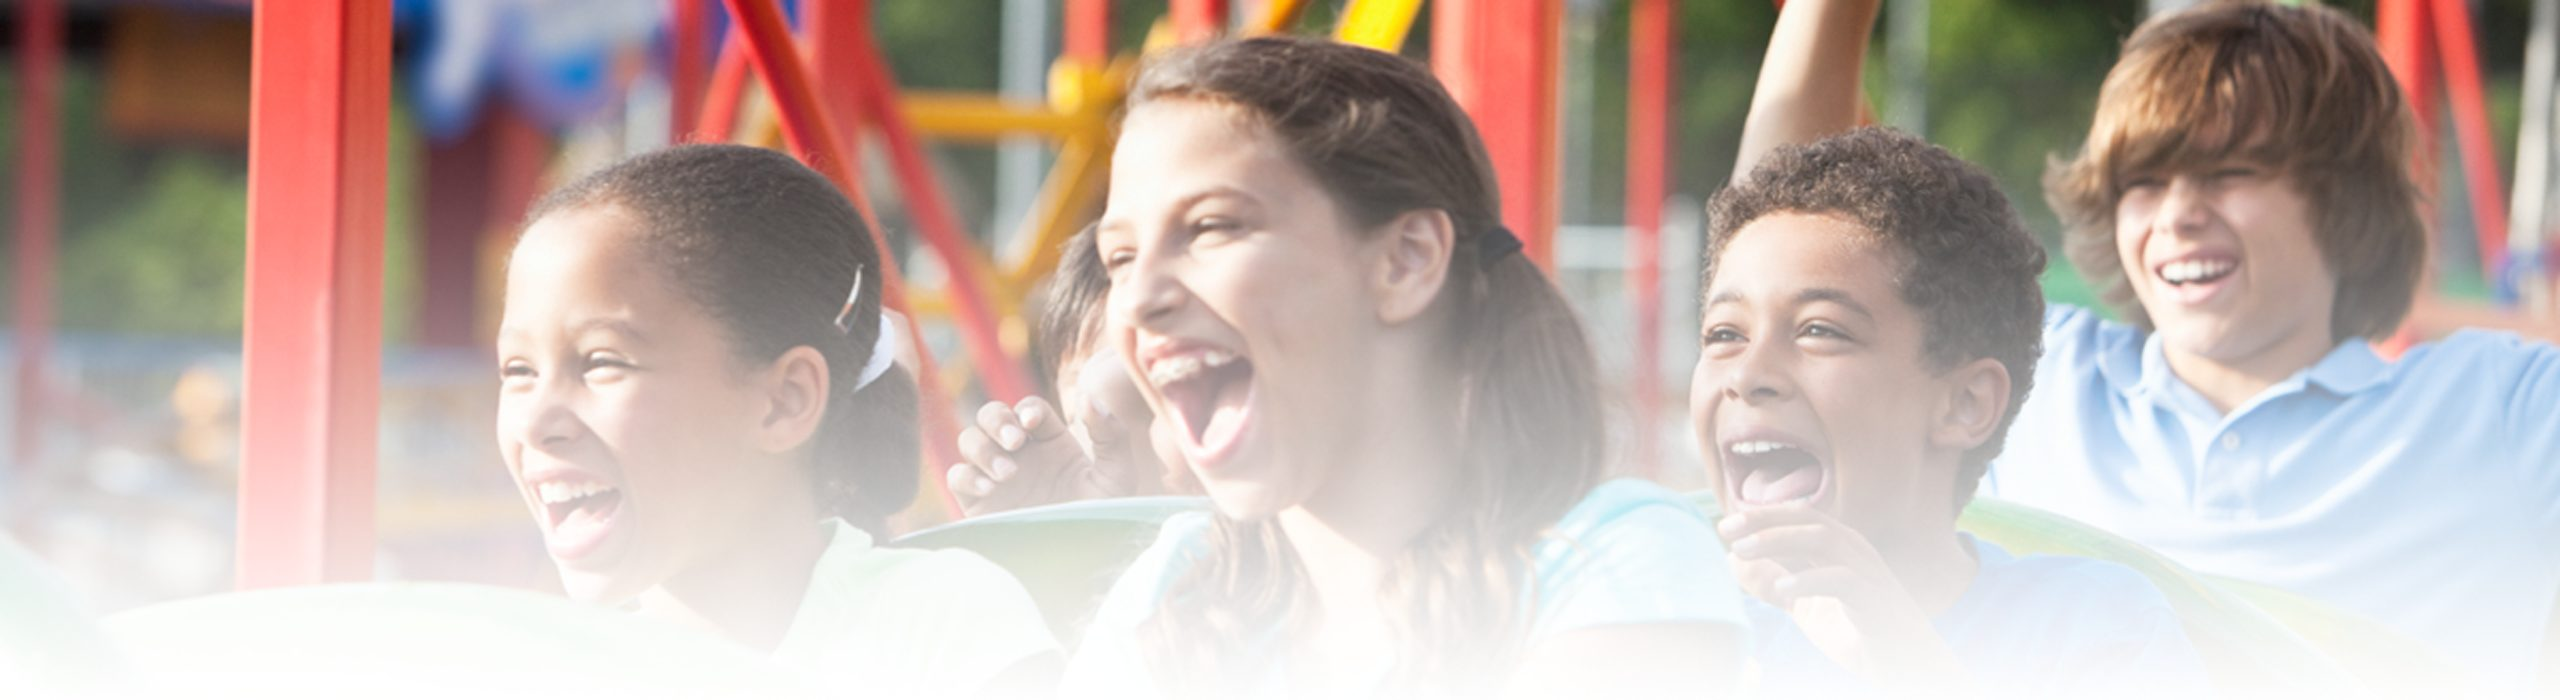 children laughing on rollercoaster